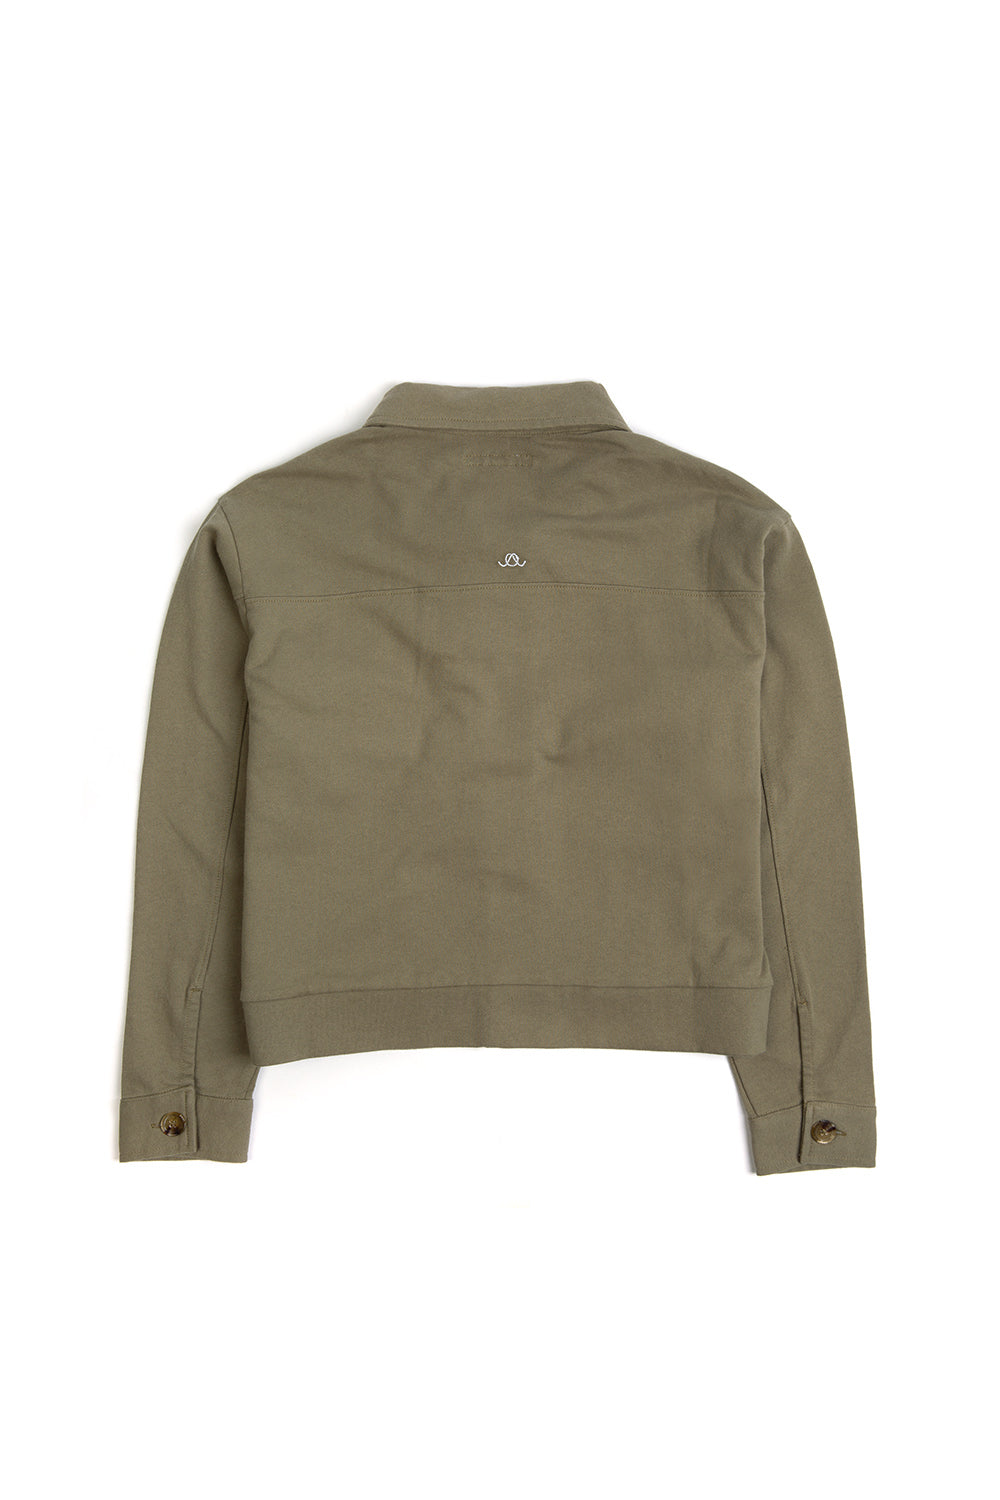 The Olive Bomber